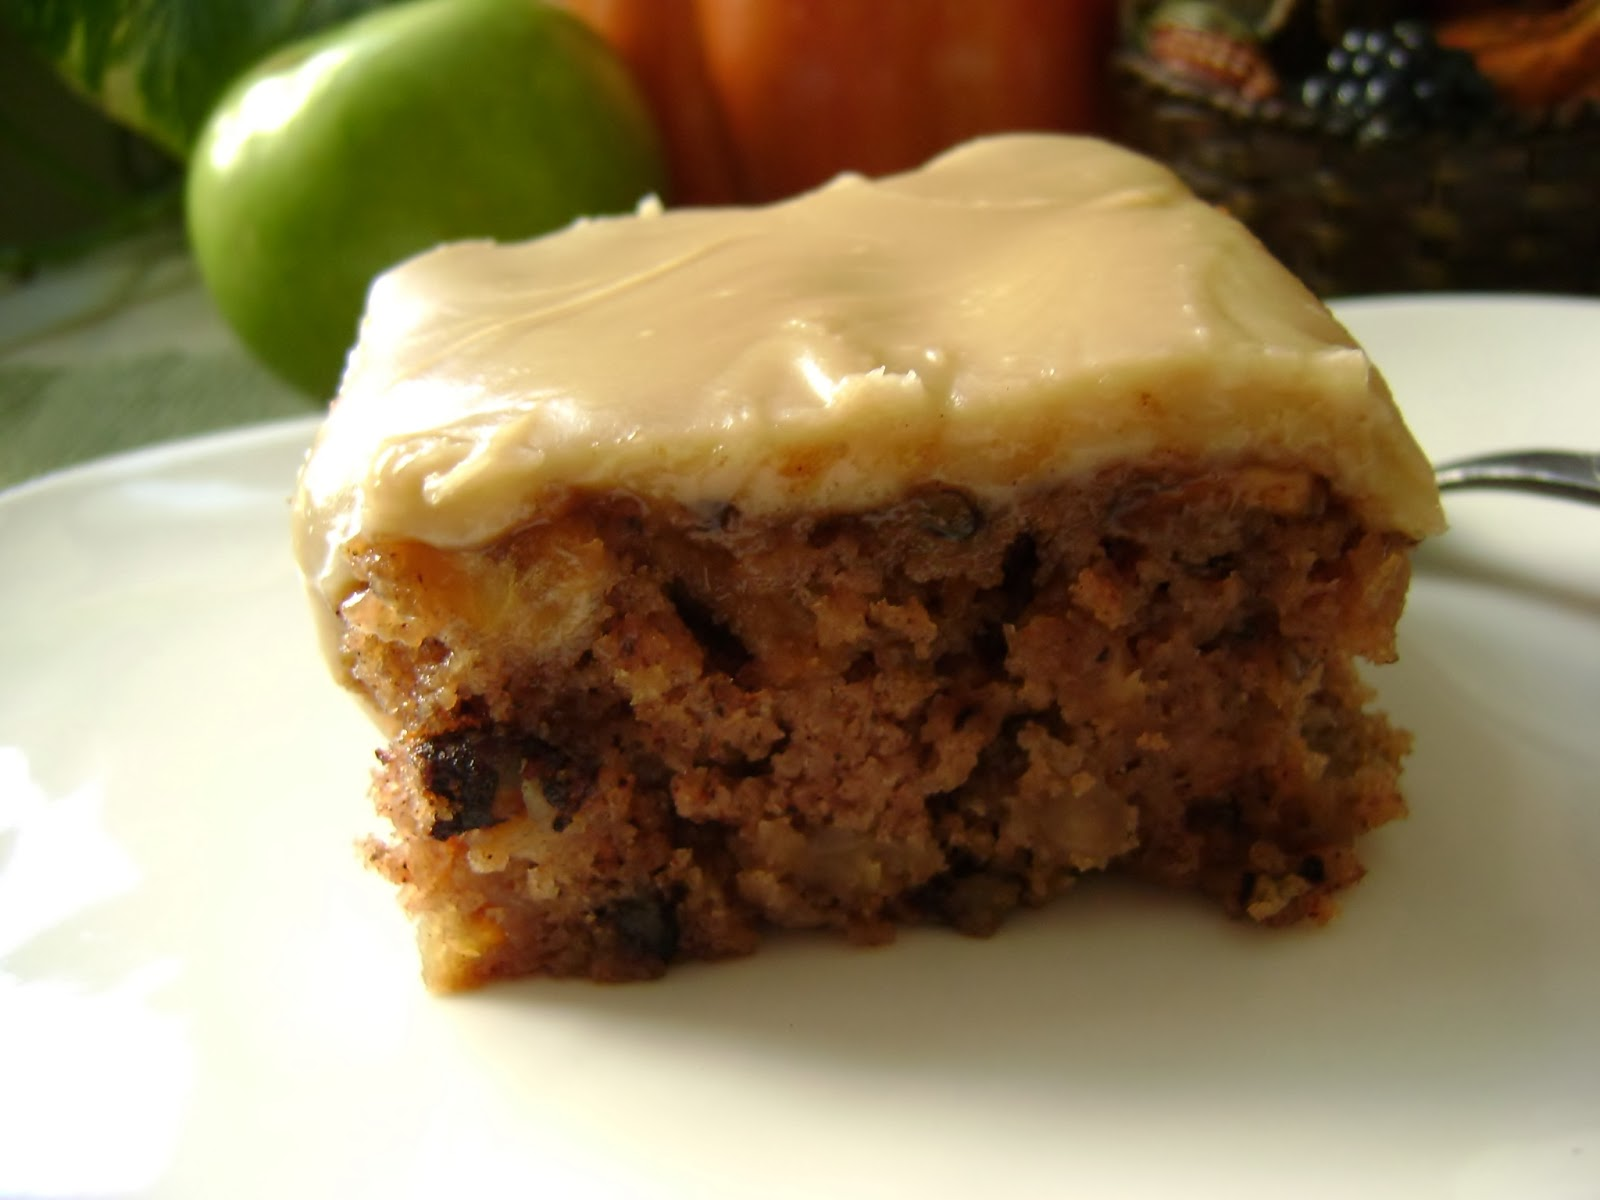 Apple Cake Recipe King Arthur: A Sunflower Life: Apple Cake With Brown-Sugar Frosting